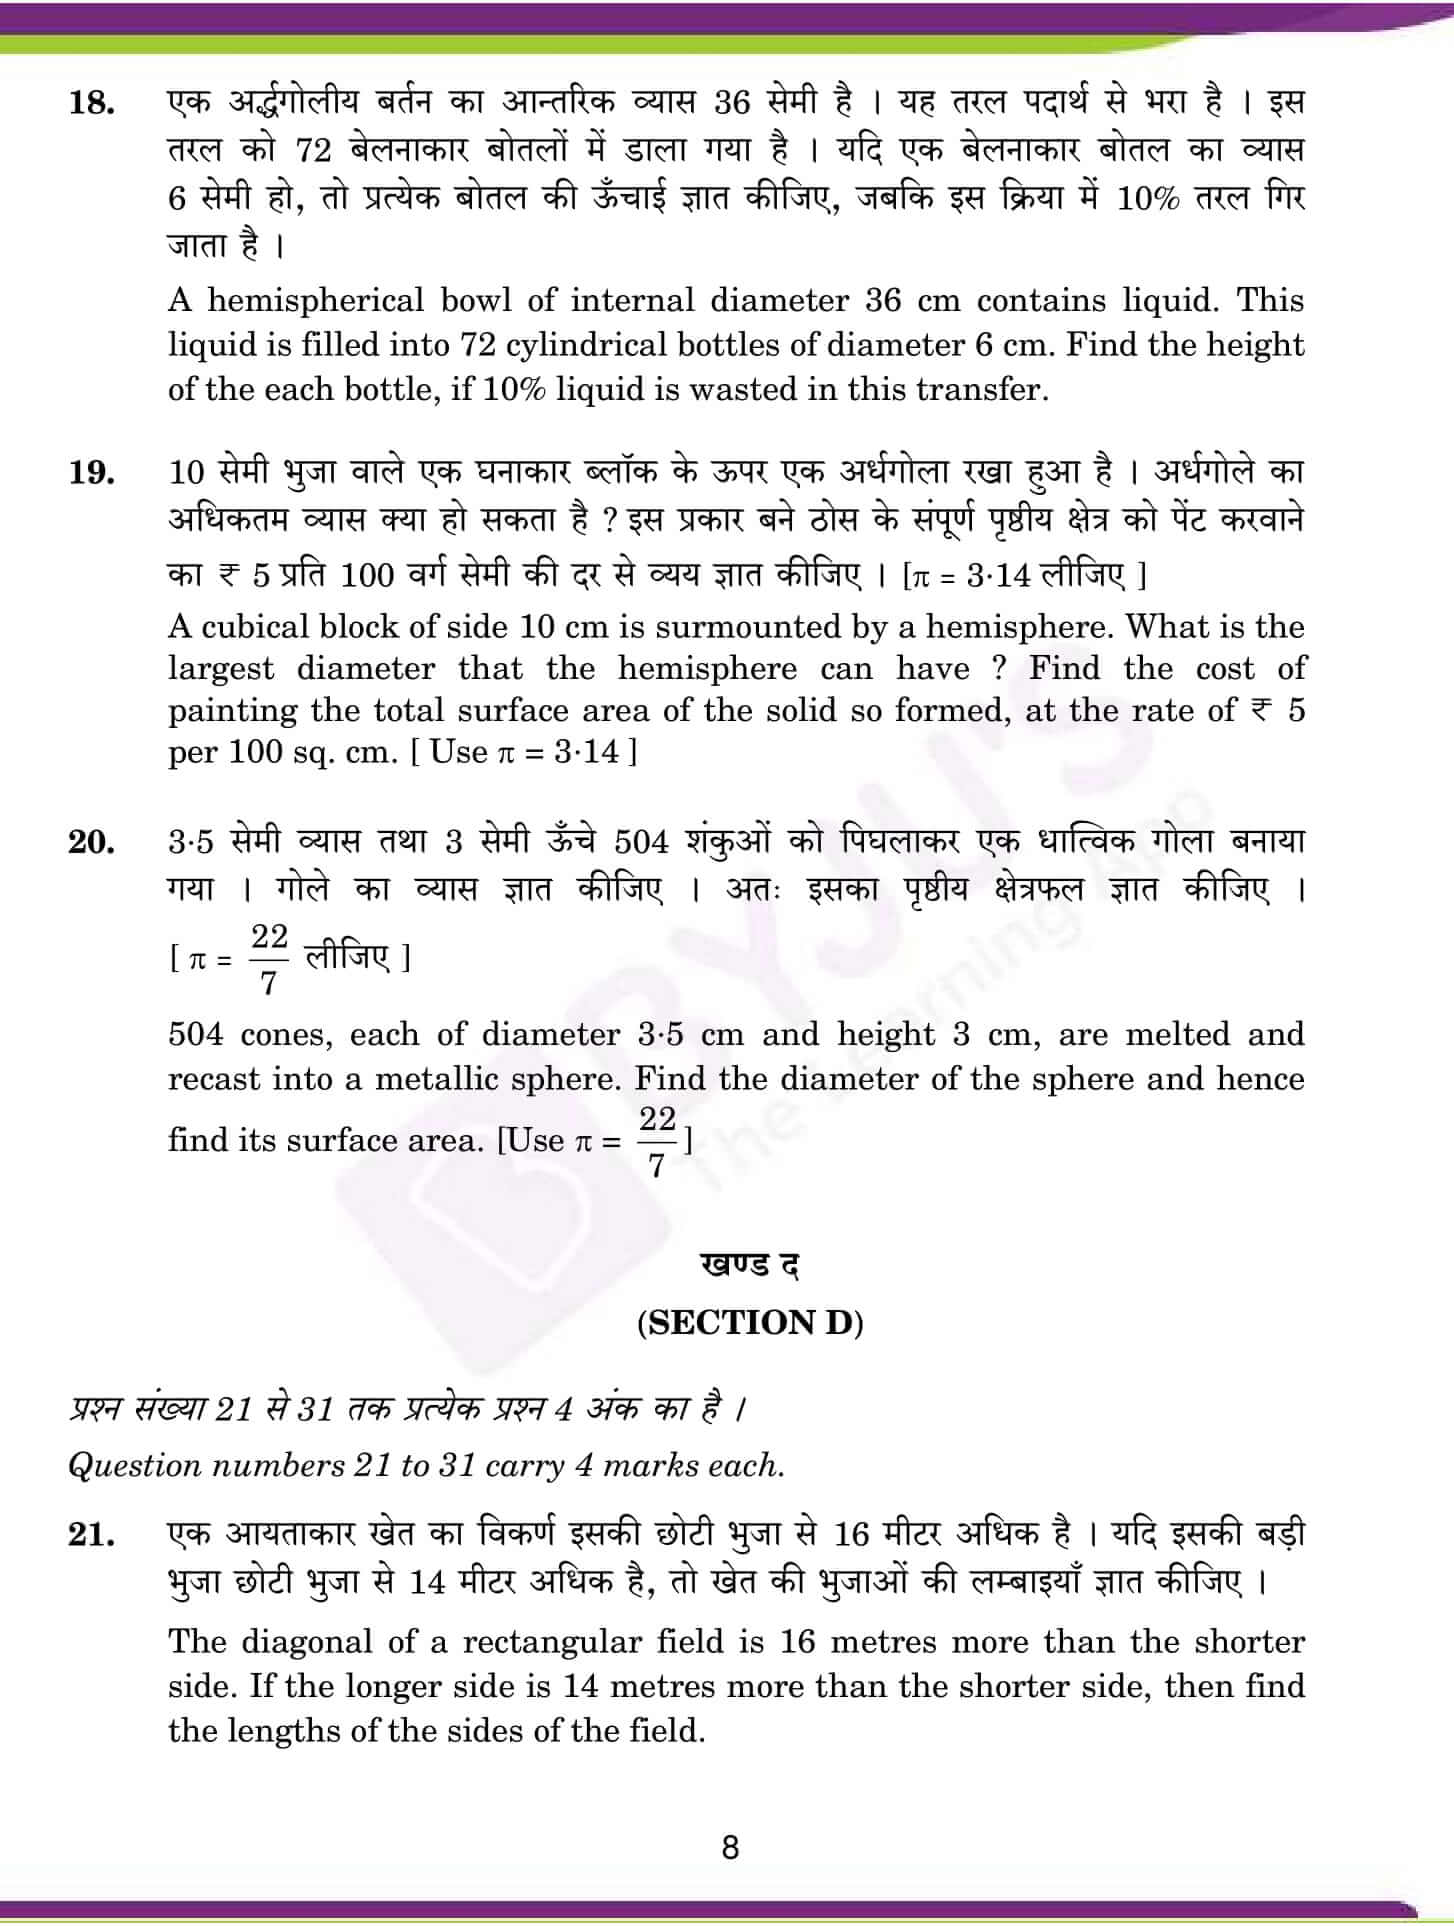 cbse sample paper class 10 maths sa 2 set 8